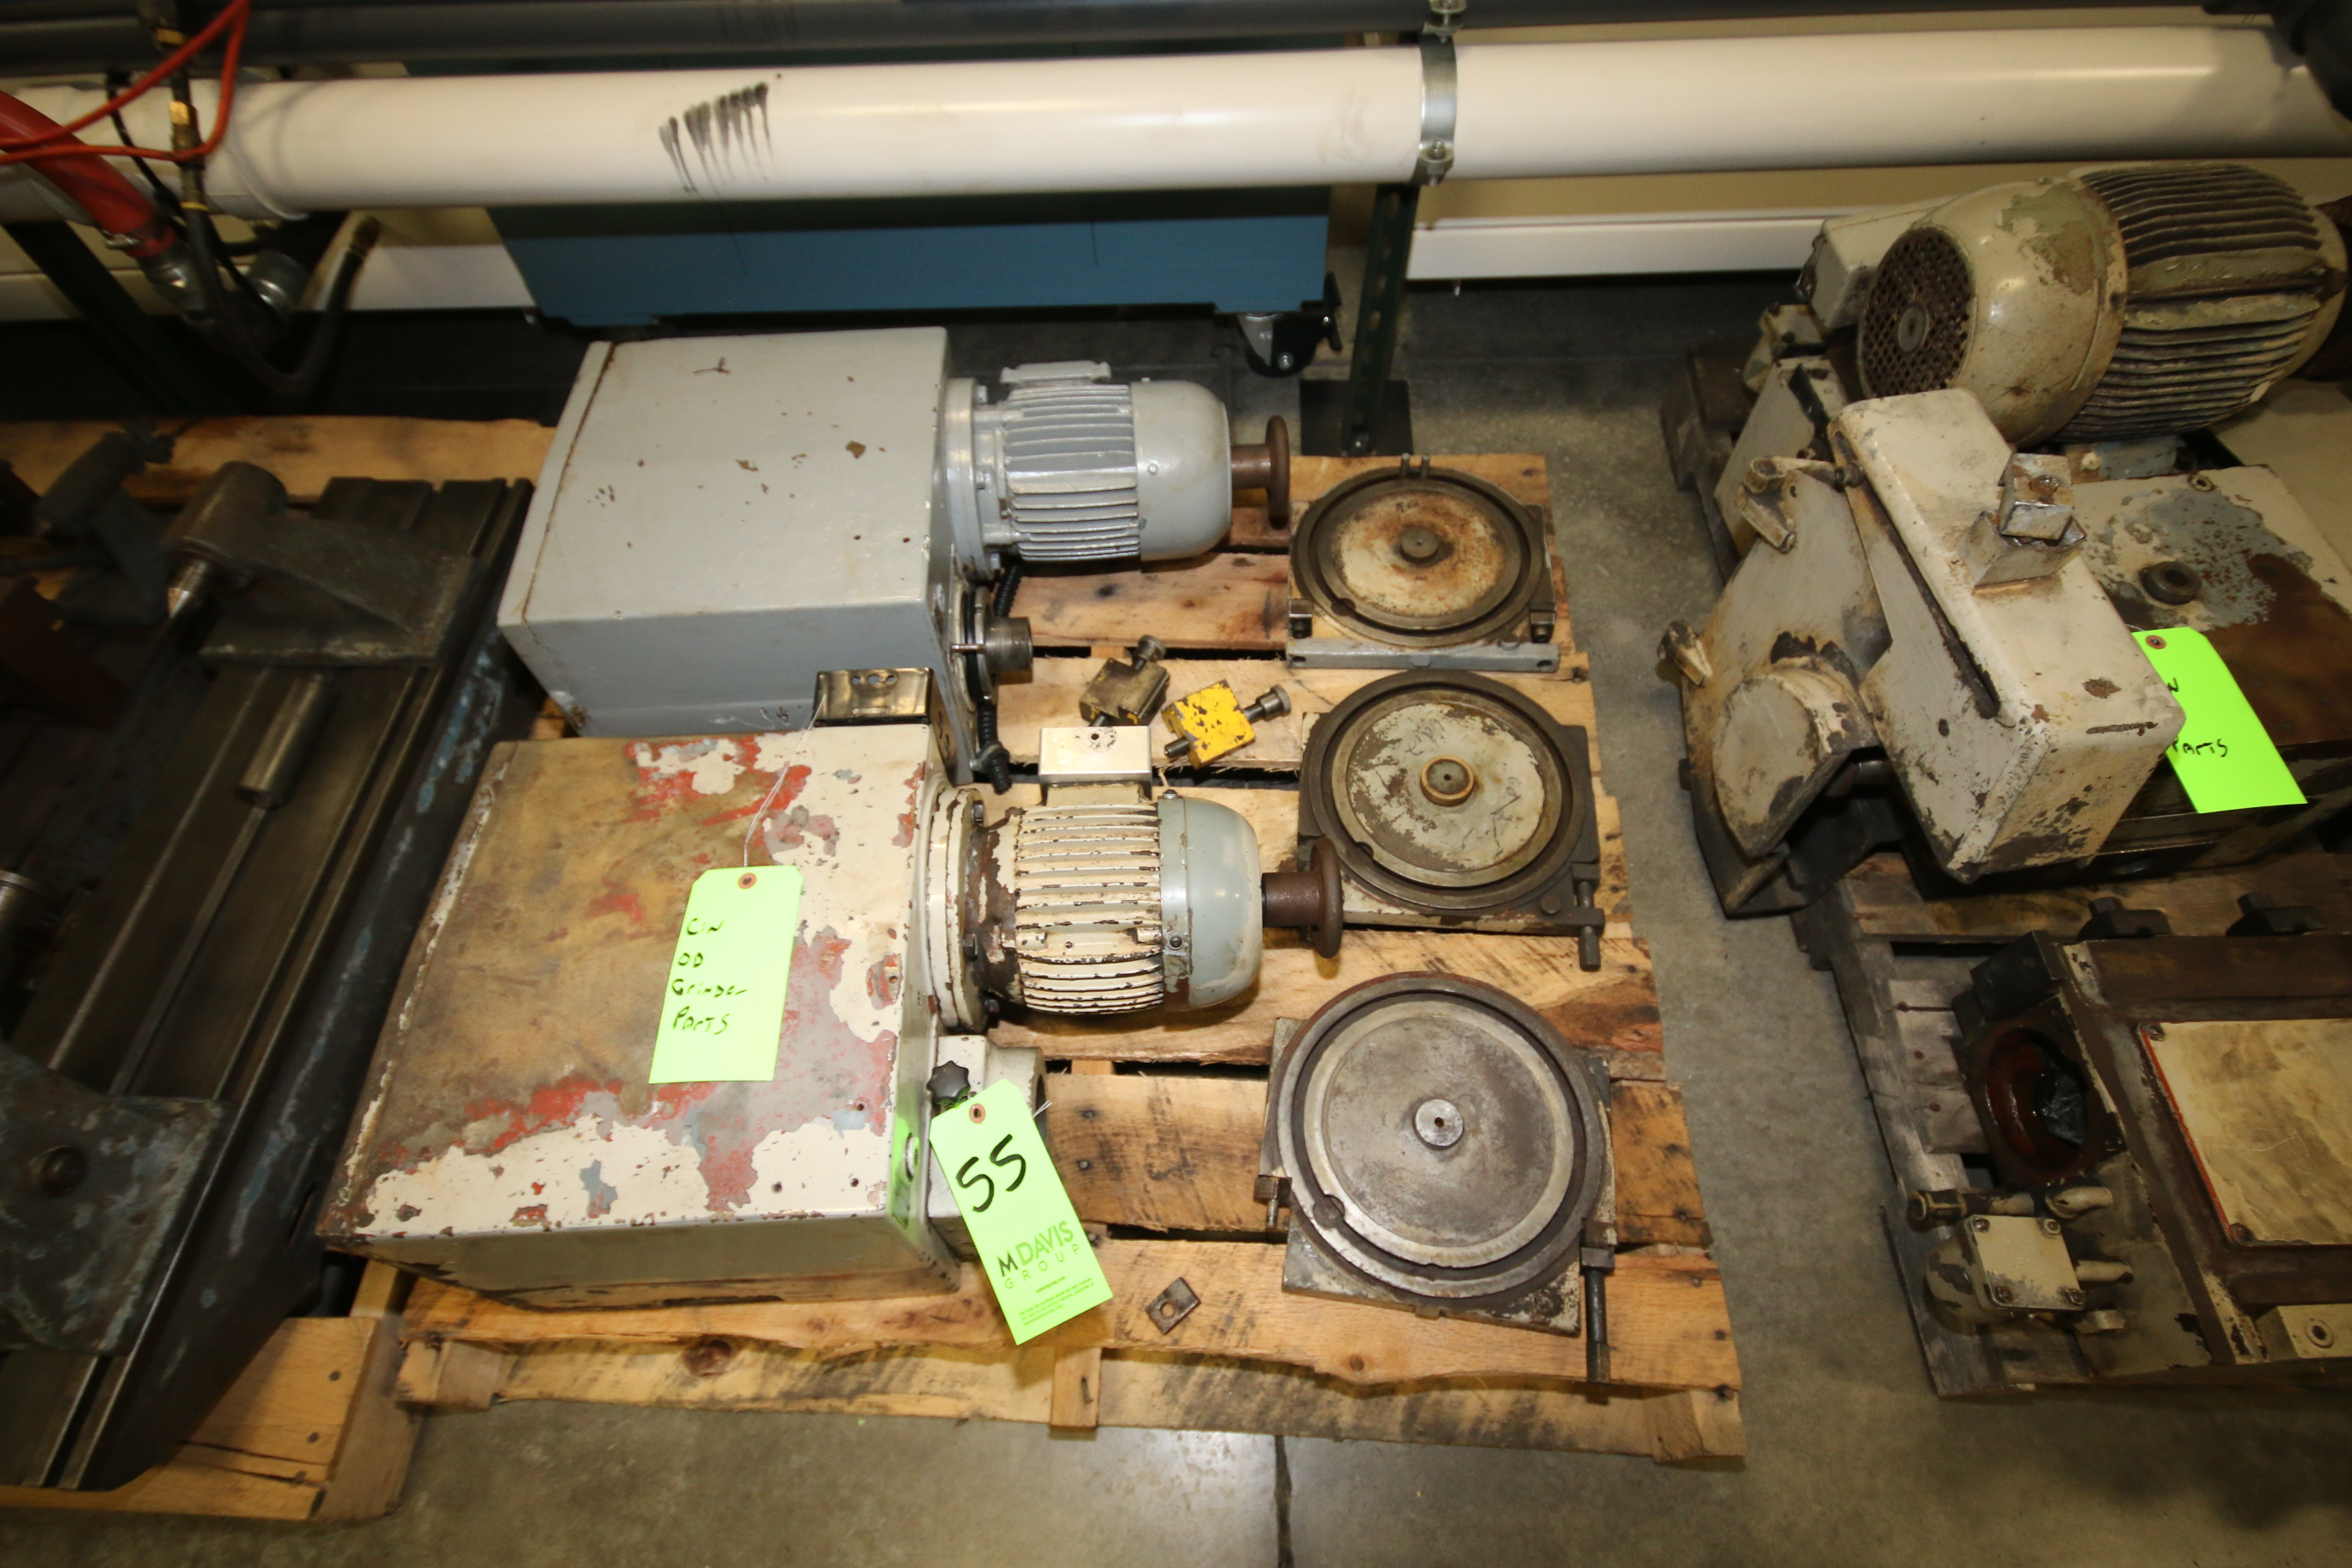 Lot 55 - Cincinnati R-Series OD Grinder Parts including Workheads (2); Mounting Plates (3)